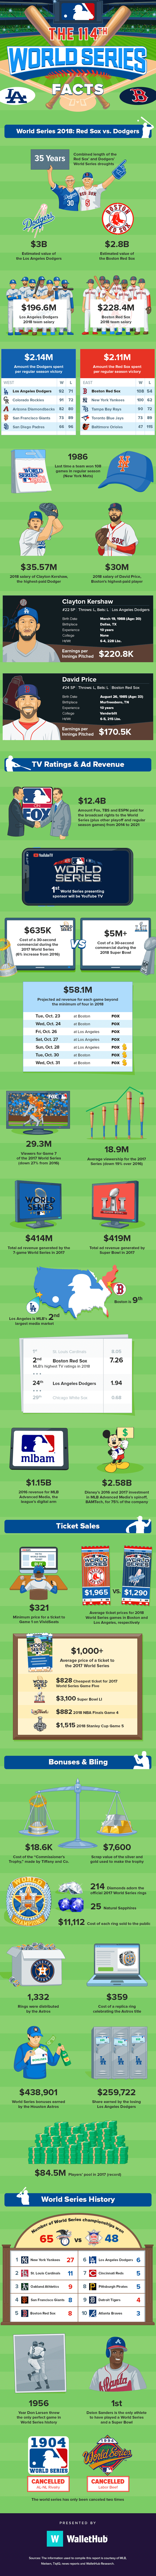 the-114th-world-series-by-the-numbers-v5